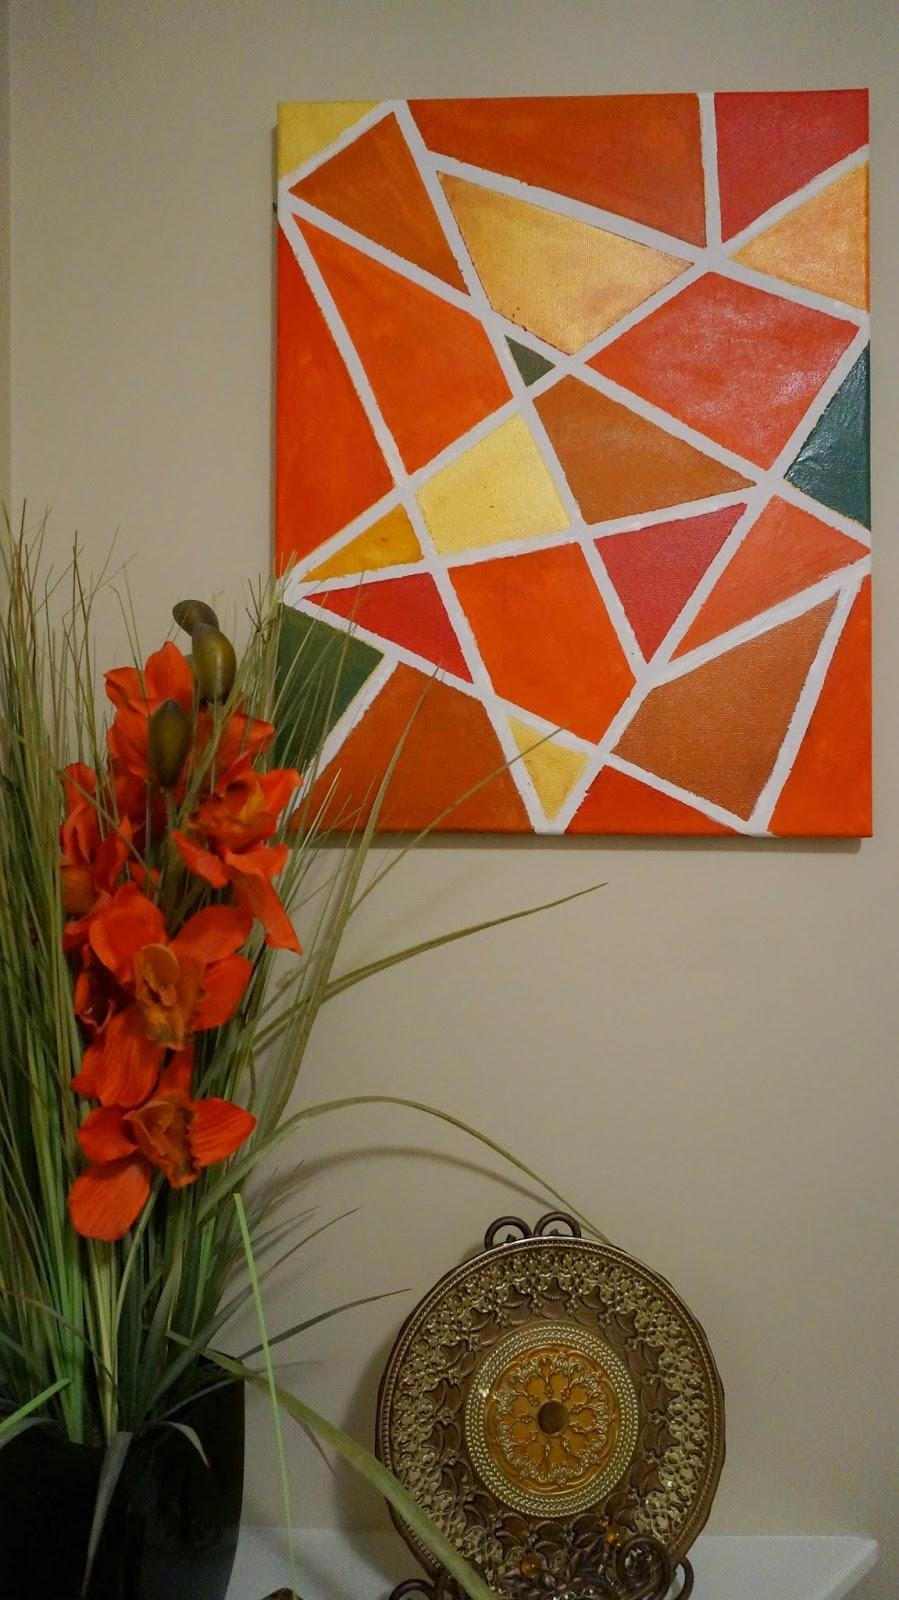 We Love Cozy Homes: Diy Wall Art Intended For Duct Tape Wall Art (View 14 of 20)